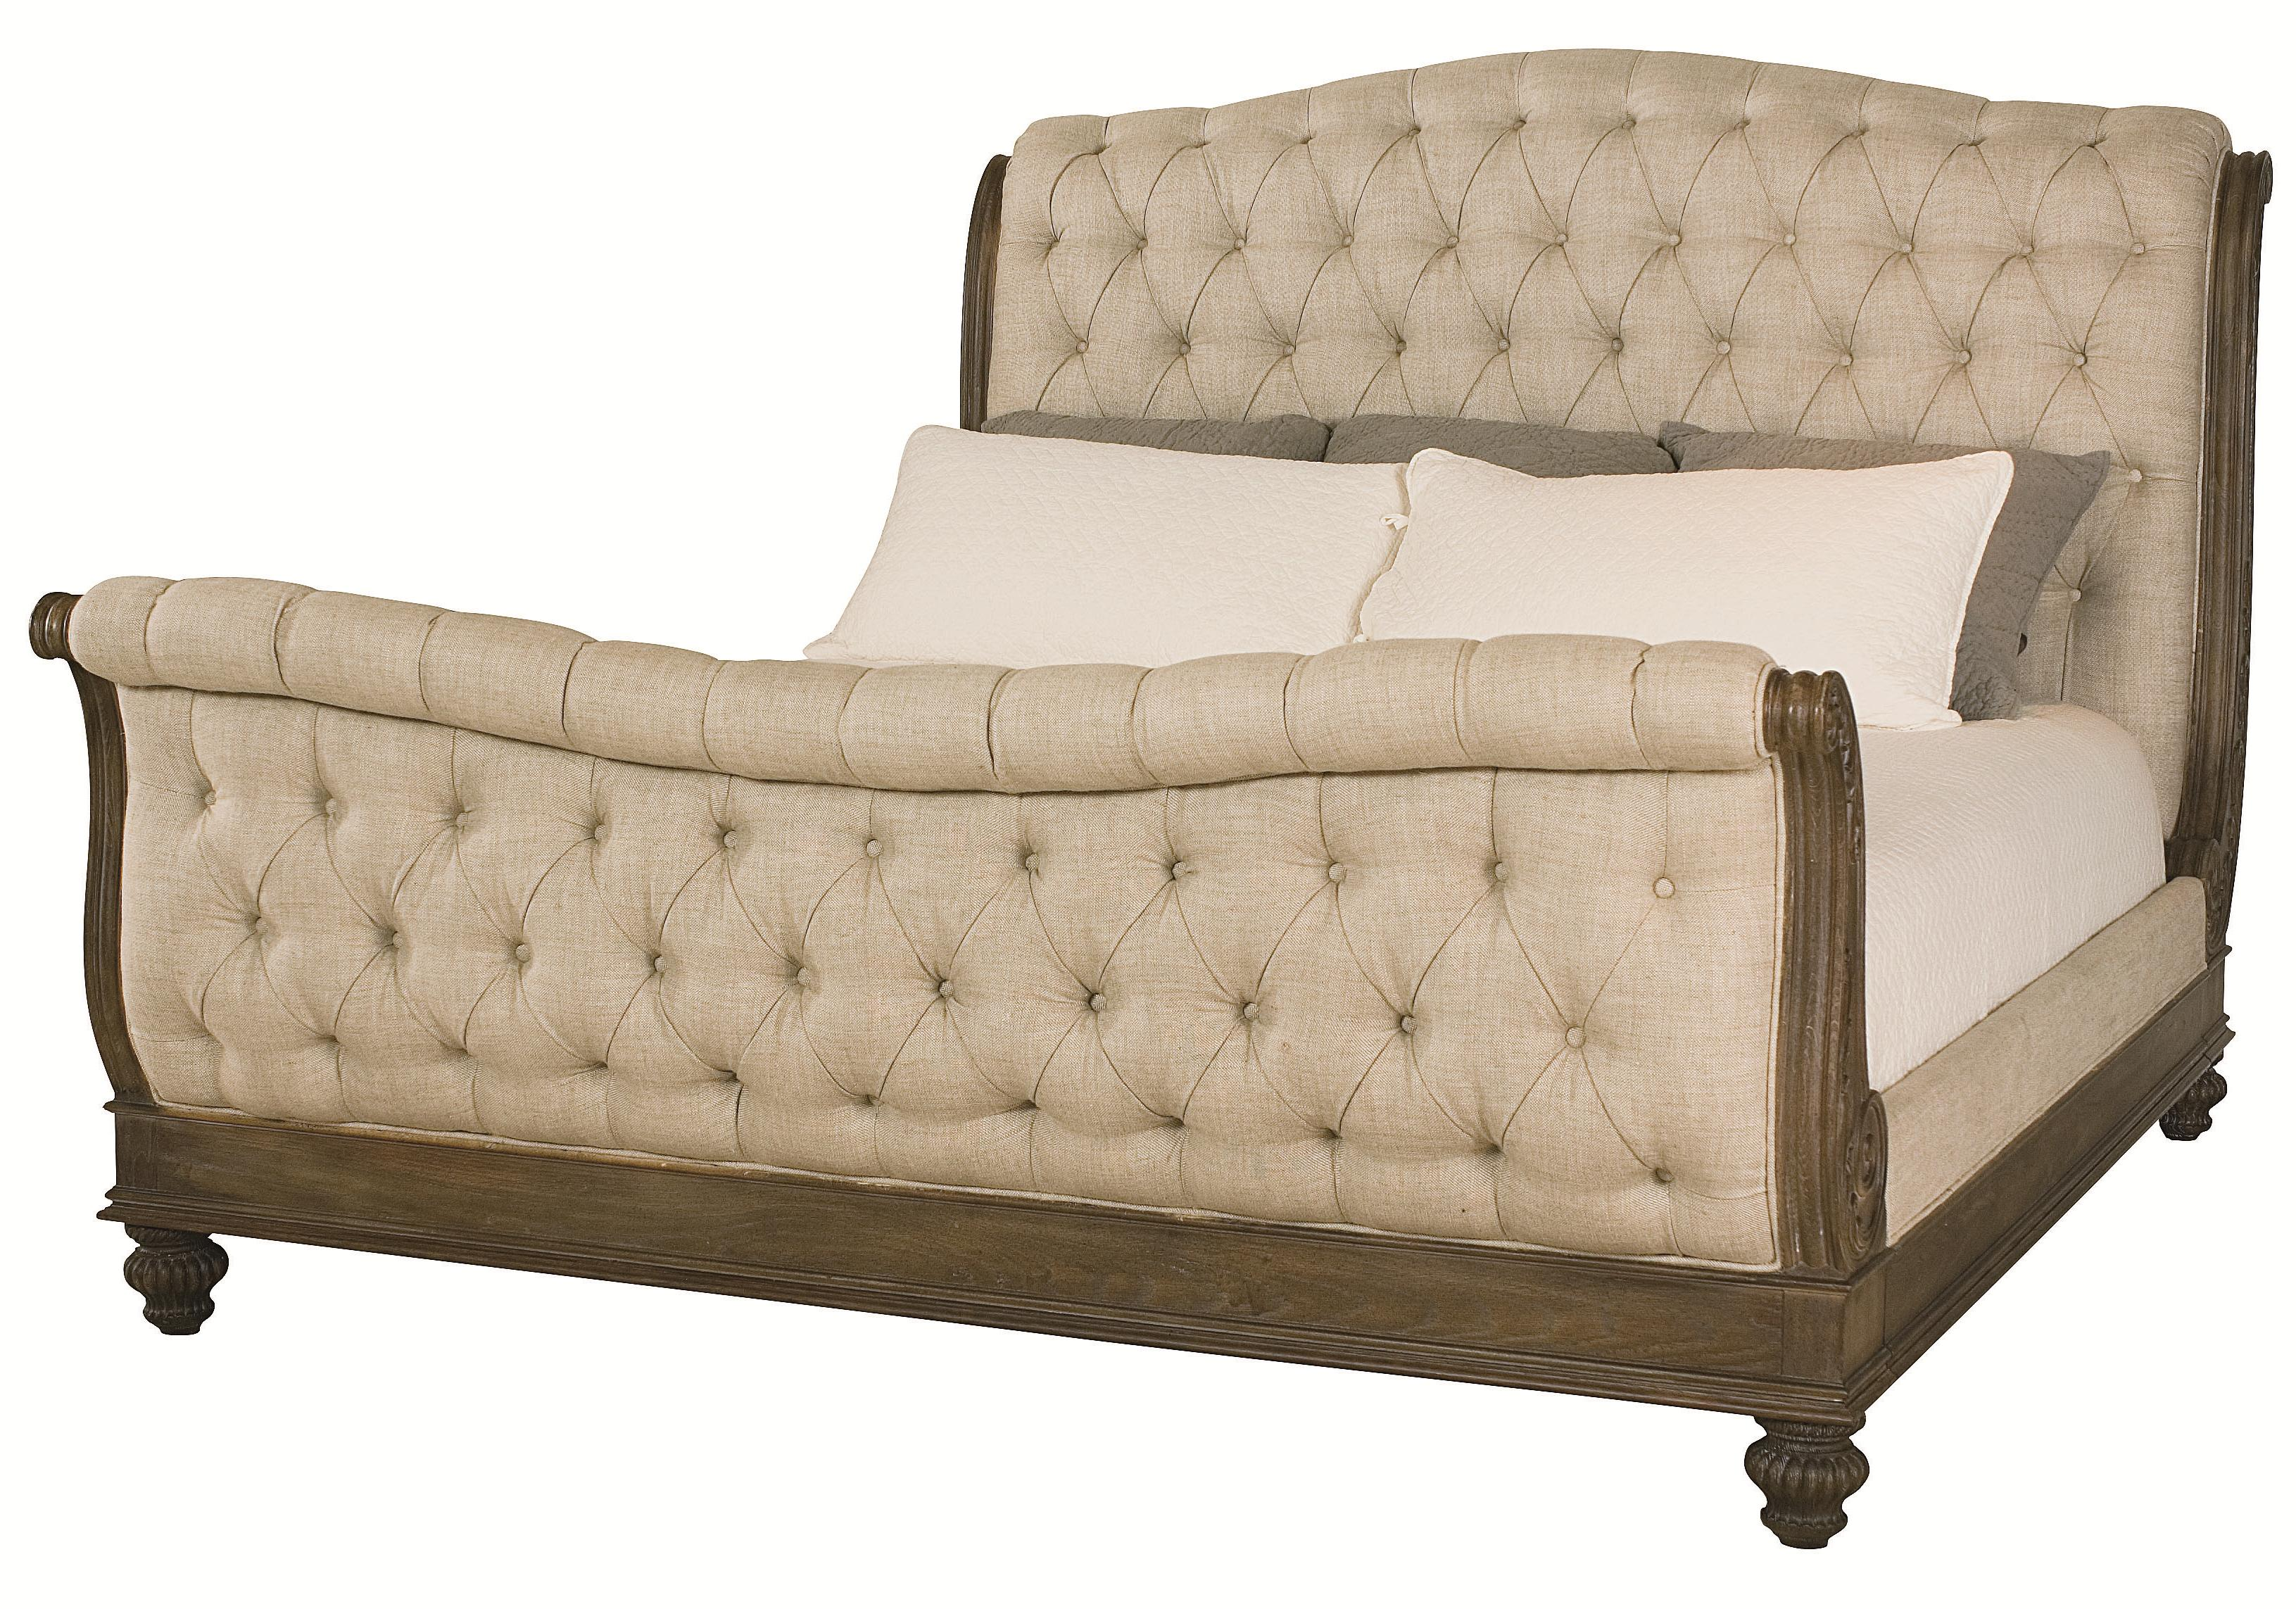 American Drew Jessica McClintock Home - The Boutique Collection Queen Sleigh Bed - Item Number: 217-304BR